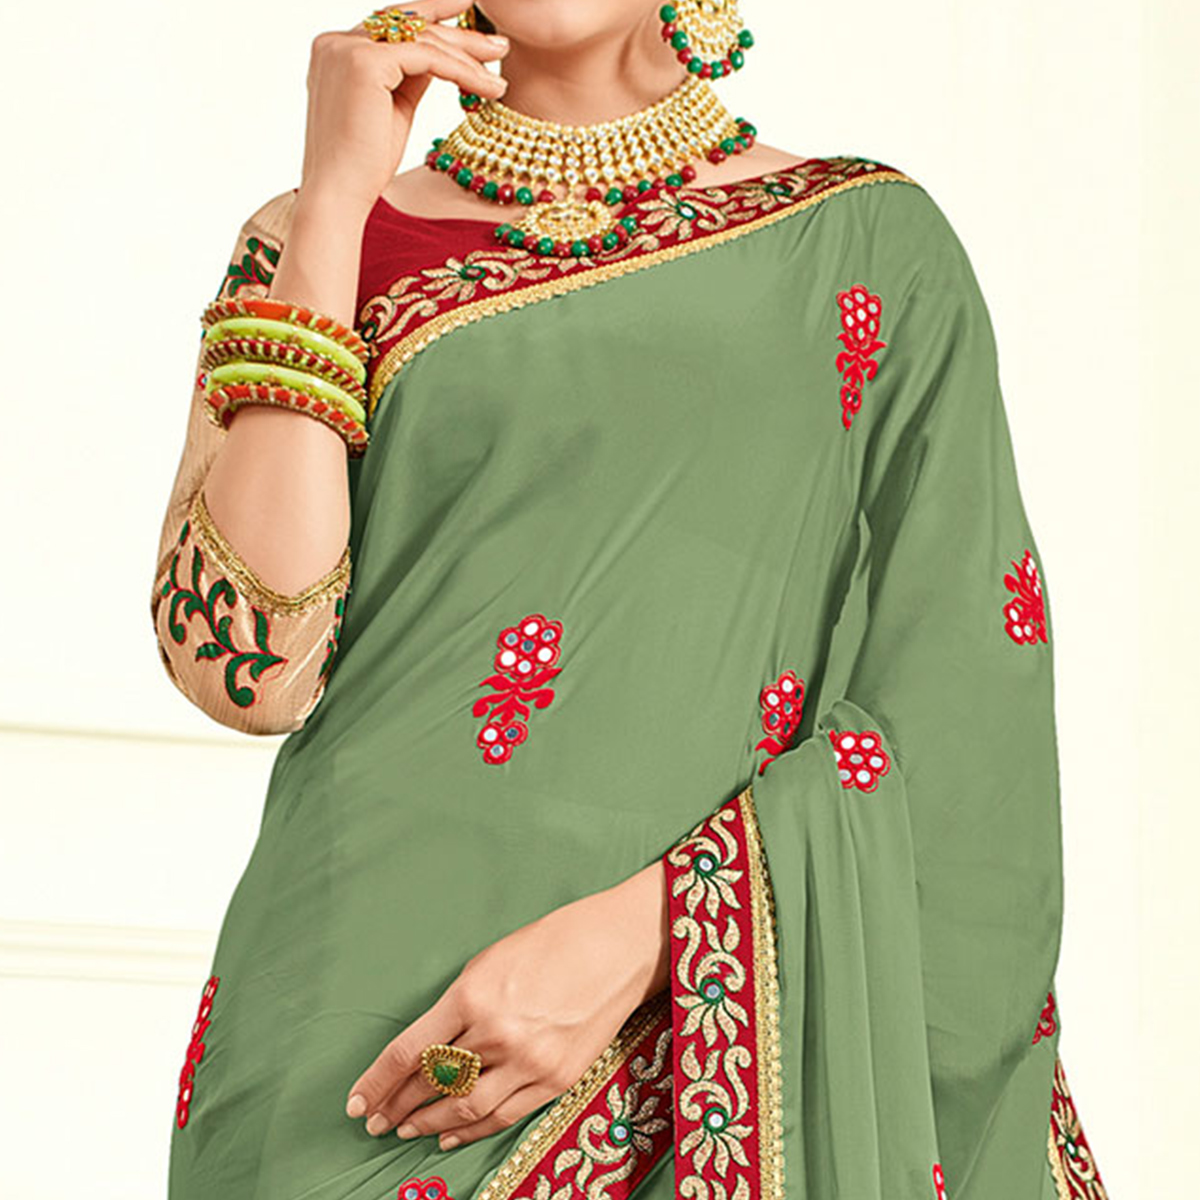 Mesmerising Green Colored Embroidered Work Party Wear Moss Chiffon Saree